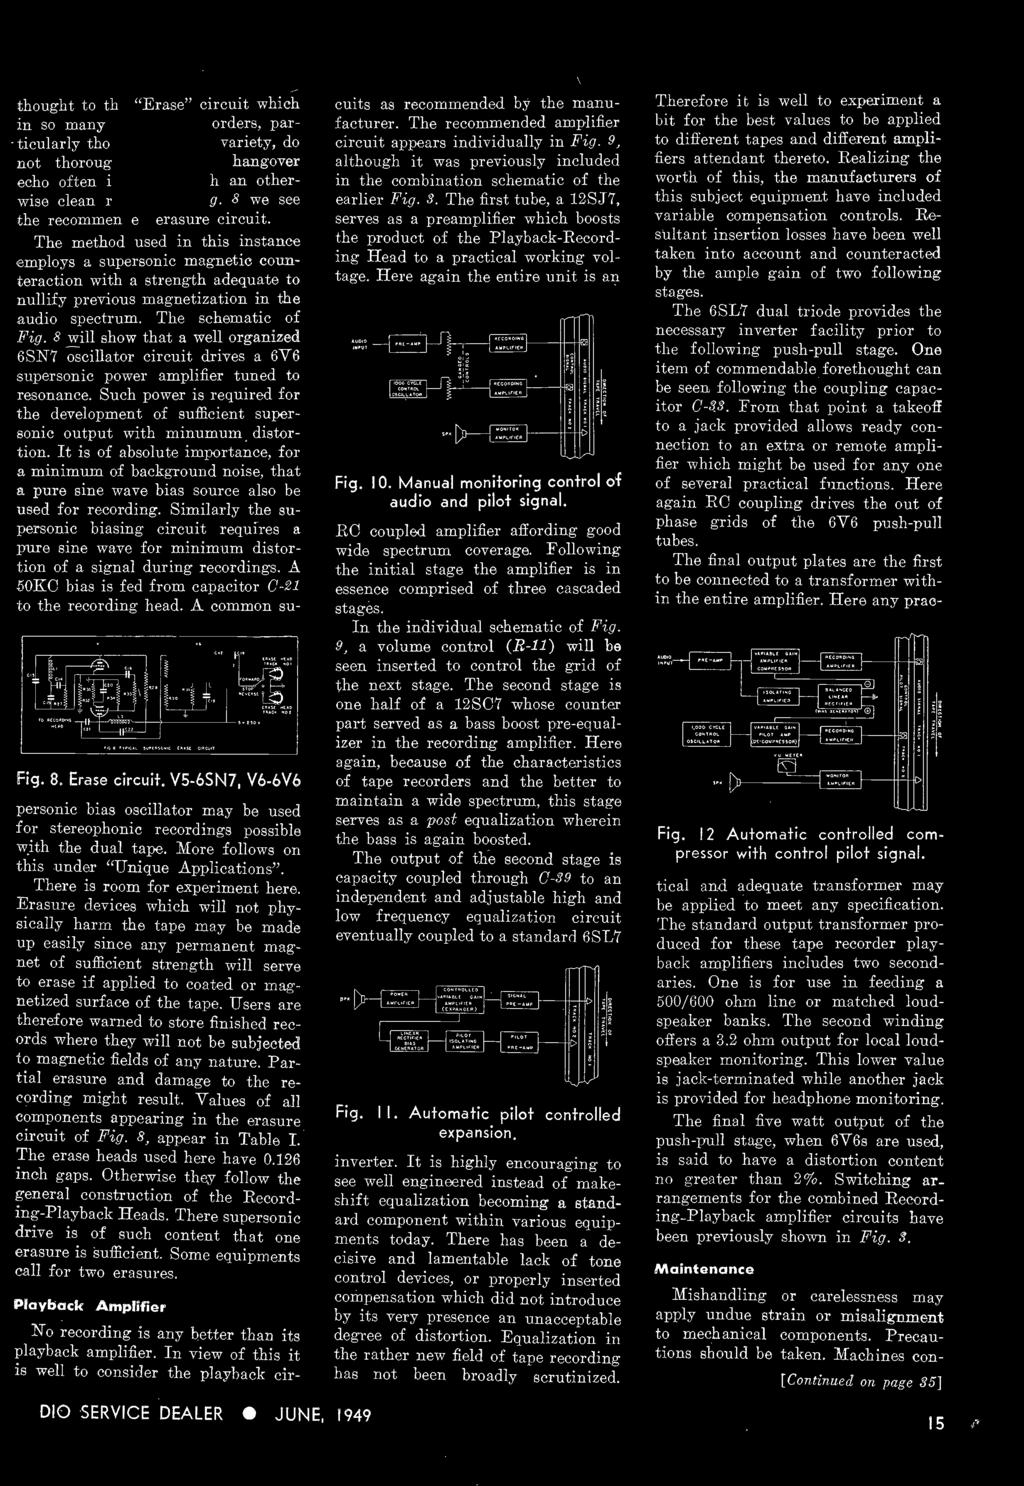 This Issue Direct View Enlarging Lens Modern Tape Recorders Part Charging Circuit Diagram For The 1949 52 Nash All Models Users Are Therefore Warned To Store Finished Records Where They Will Not Be Subjected